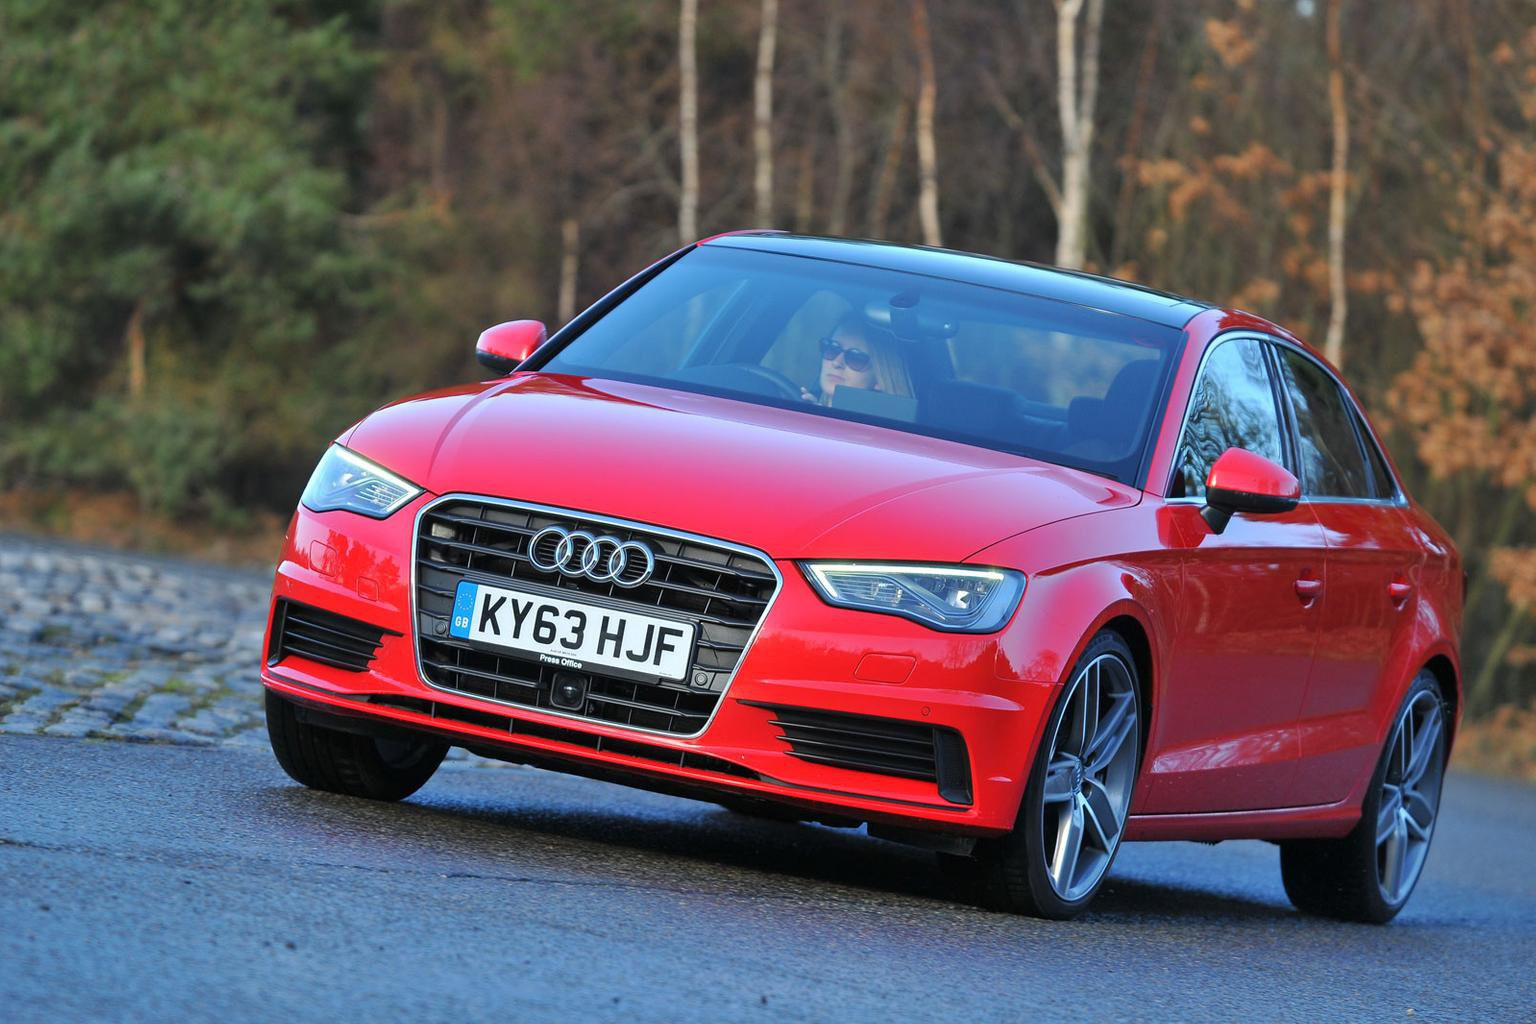 2014 Audi A3 Saloon 1.6 TDI S tronic review